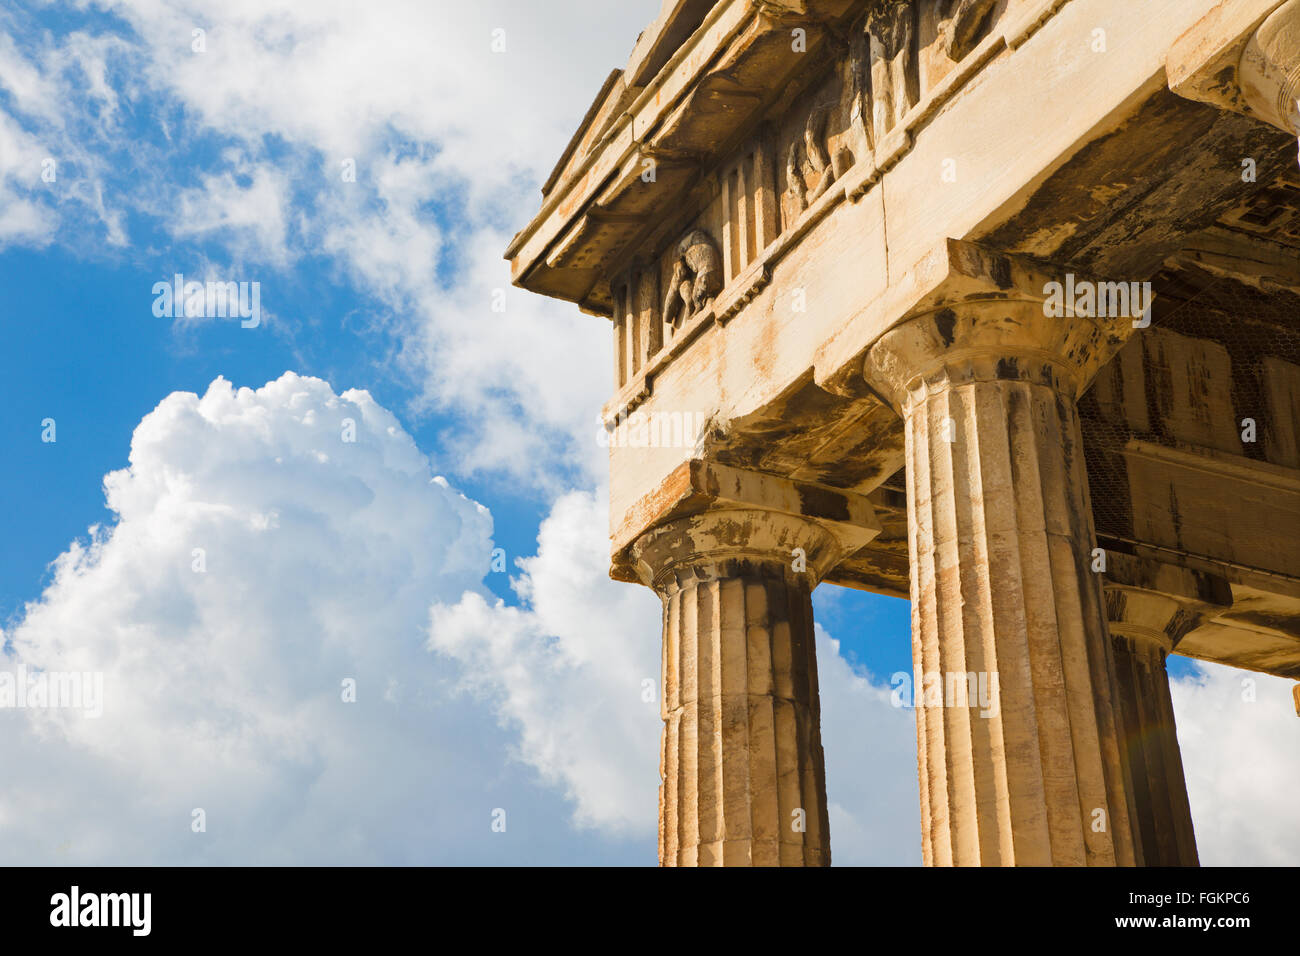 Athens - The detail of Temple of Hephaestus. - Stock Image